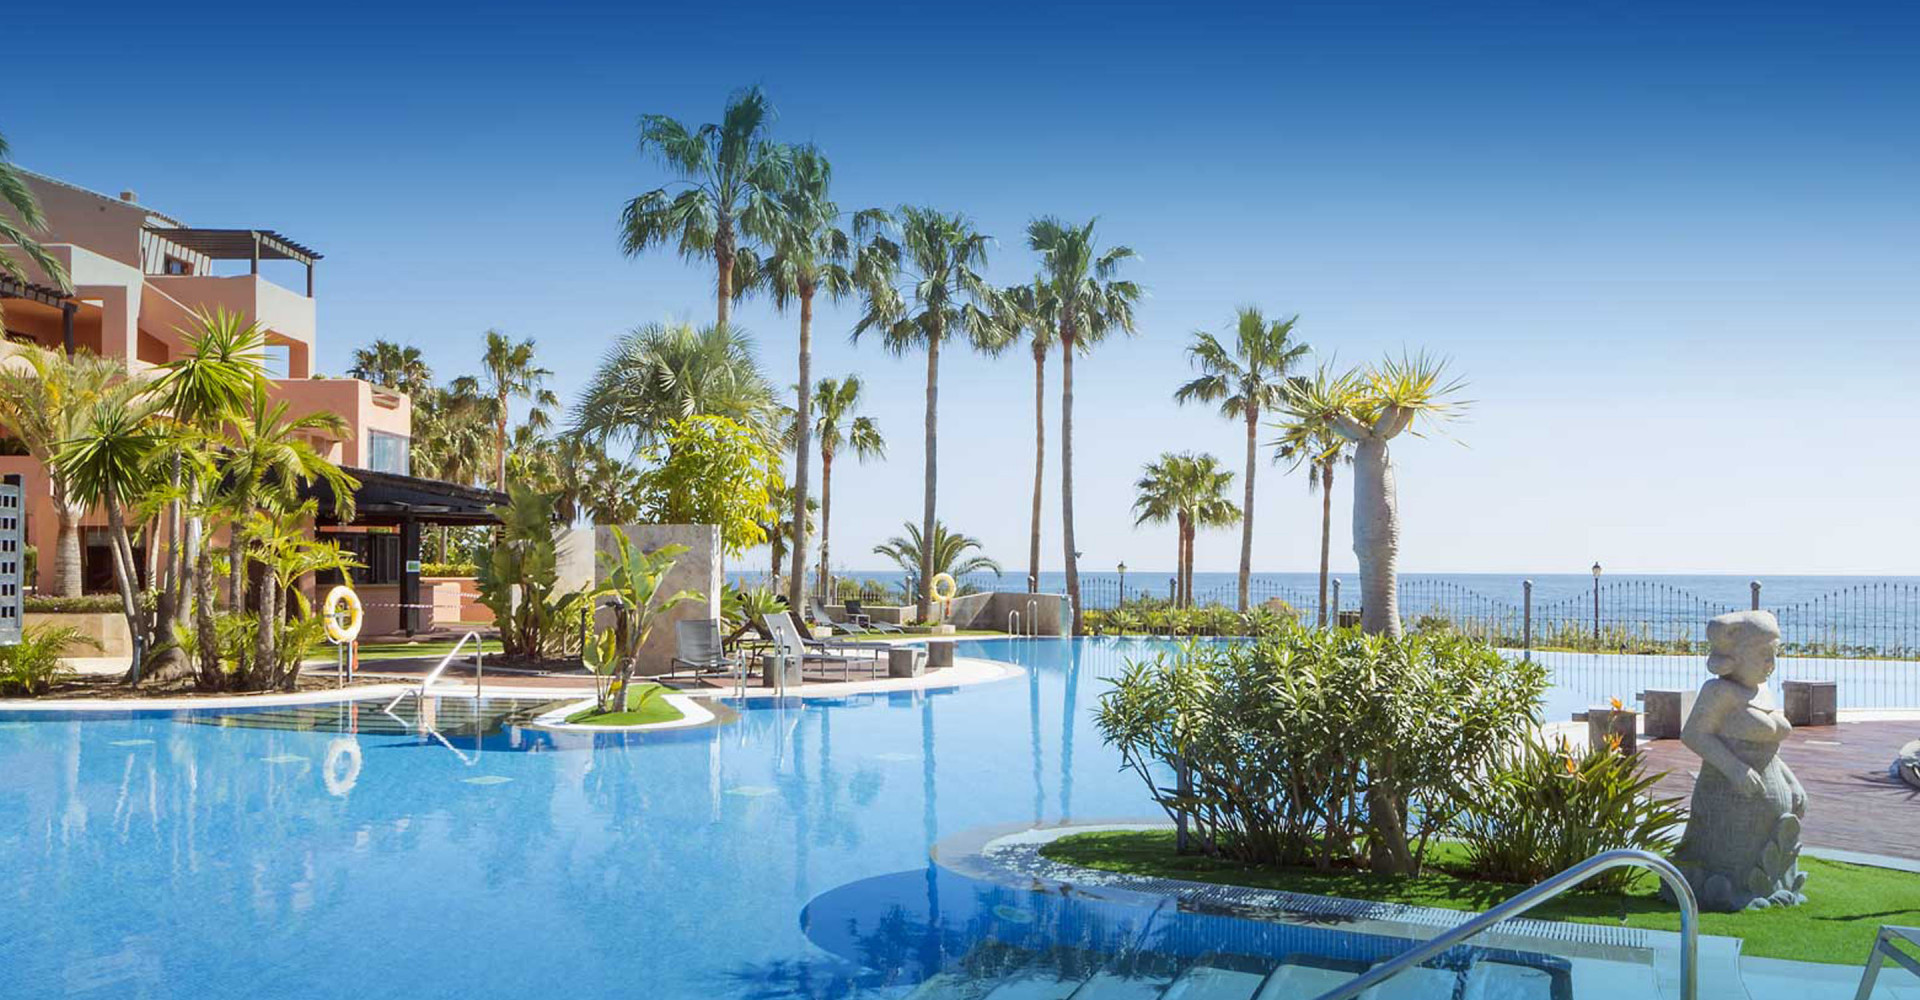 Exclusive apartments with direct access to the beach for sale in Estepona